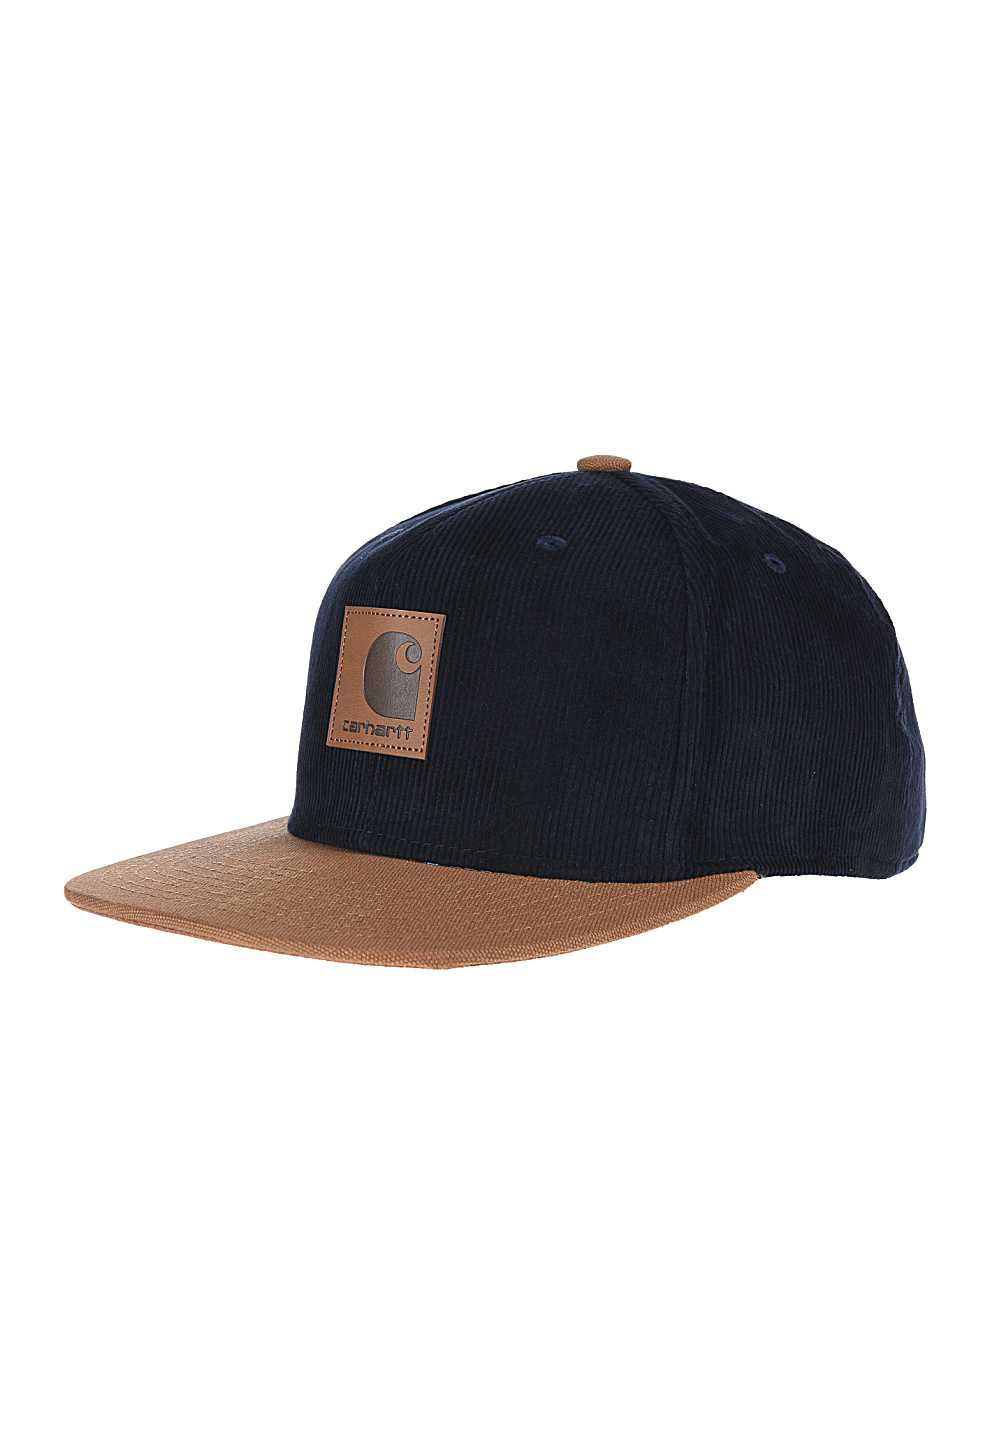 7010356bd74 Next. This product is currently out of stock. carhartt WIP. Gibson Starter  - Snapback Cap